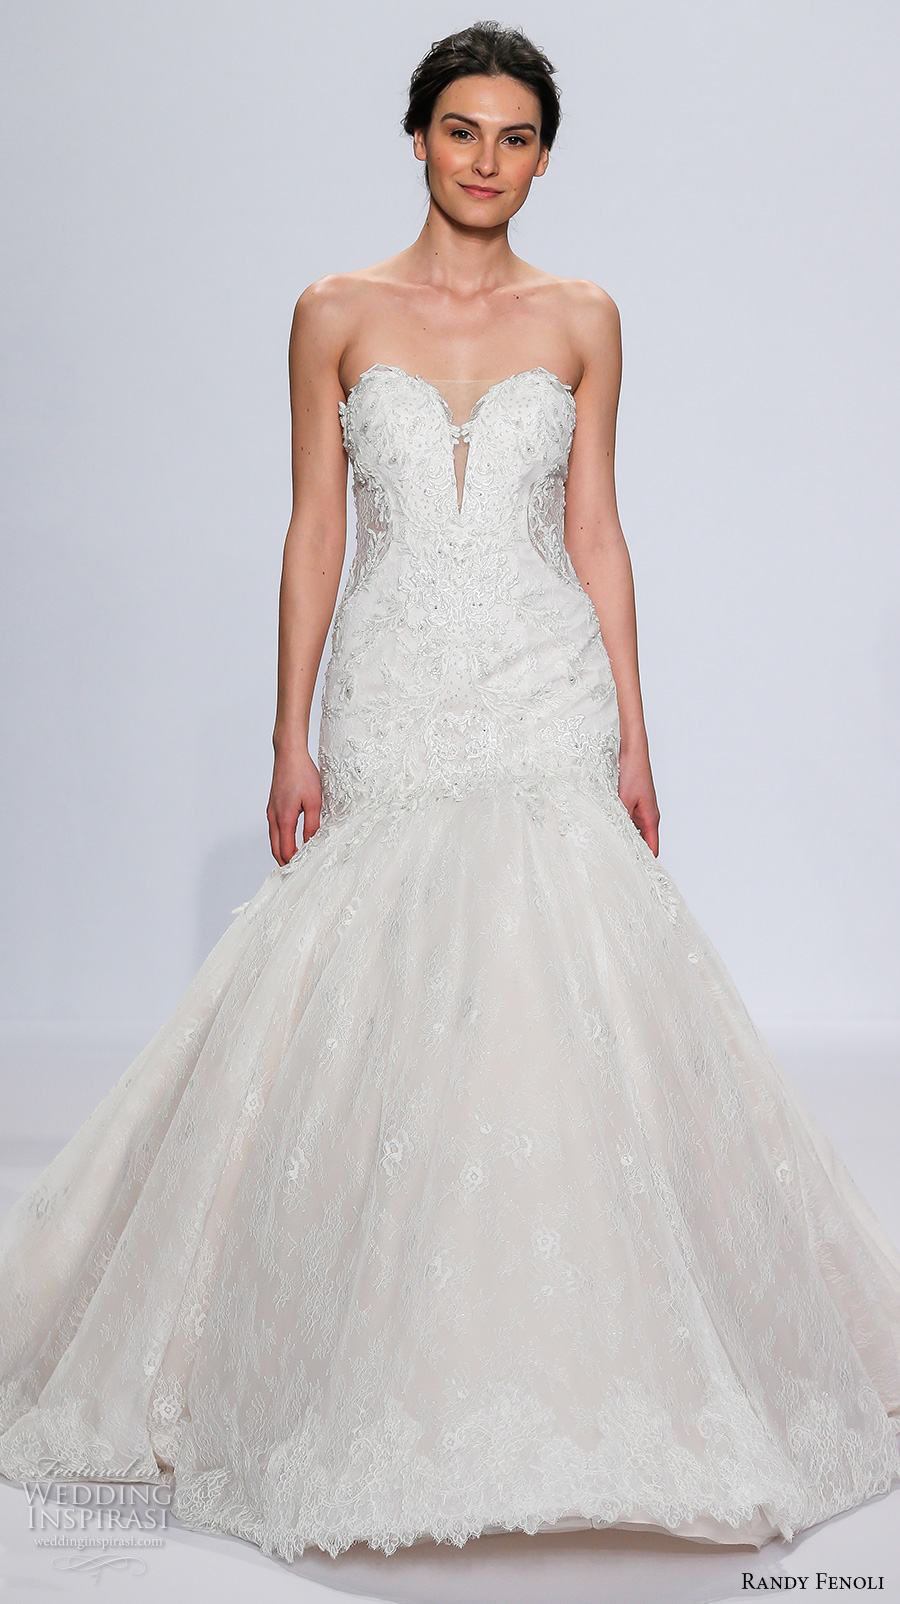 randy fenoli spring 2018 bridal strapless deep plunging sweetheart neckline heavily embellished bodice princess trumpet wedding dress chapel train (18) mv